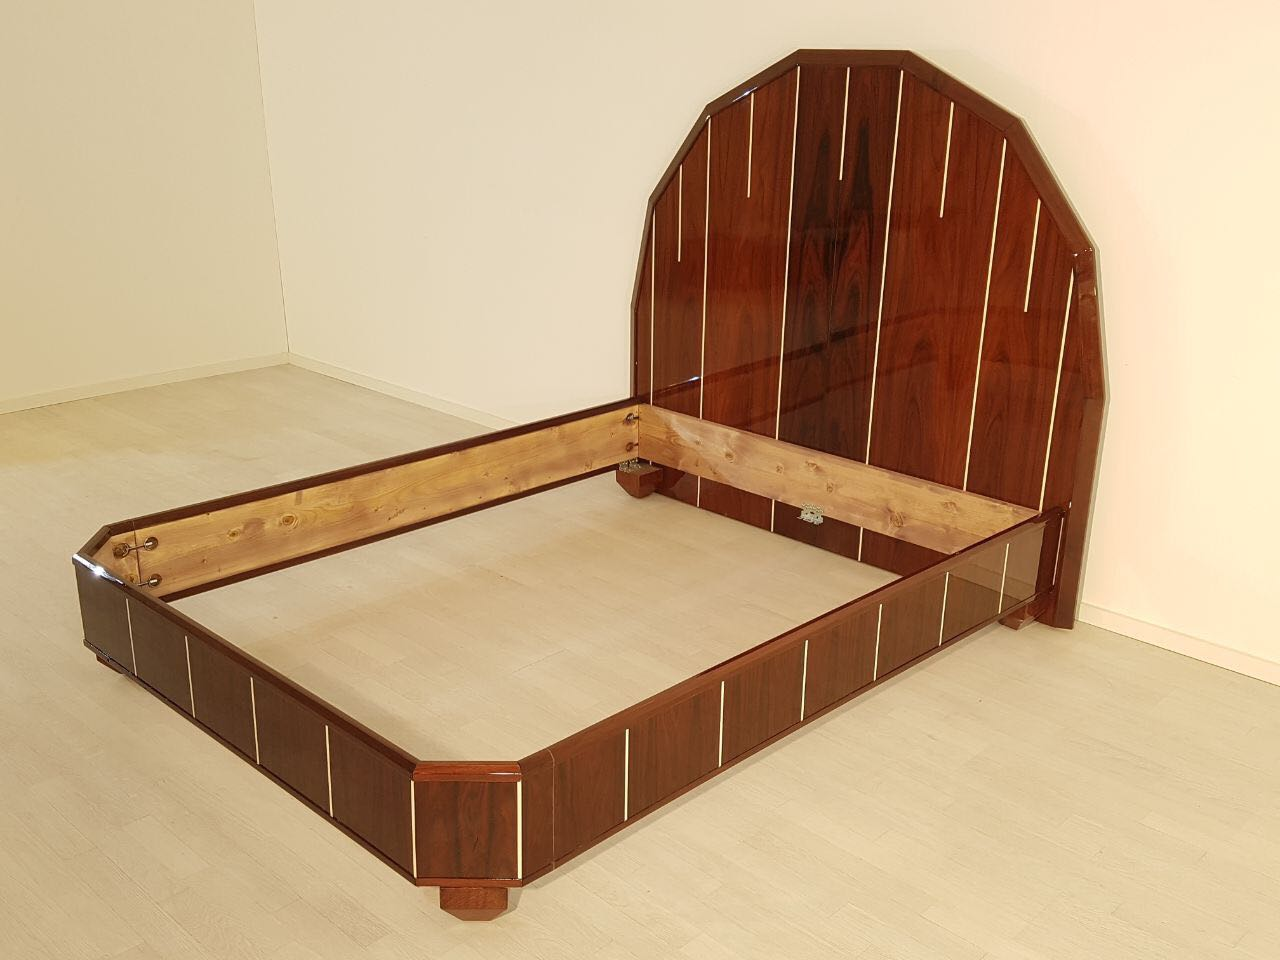 Art Deco Bed made of Palisander Wood